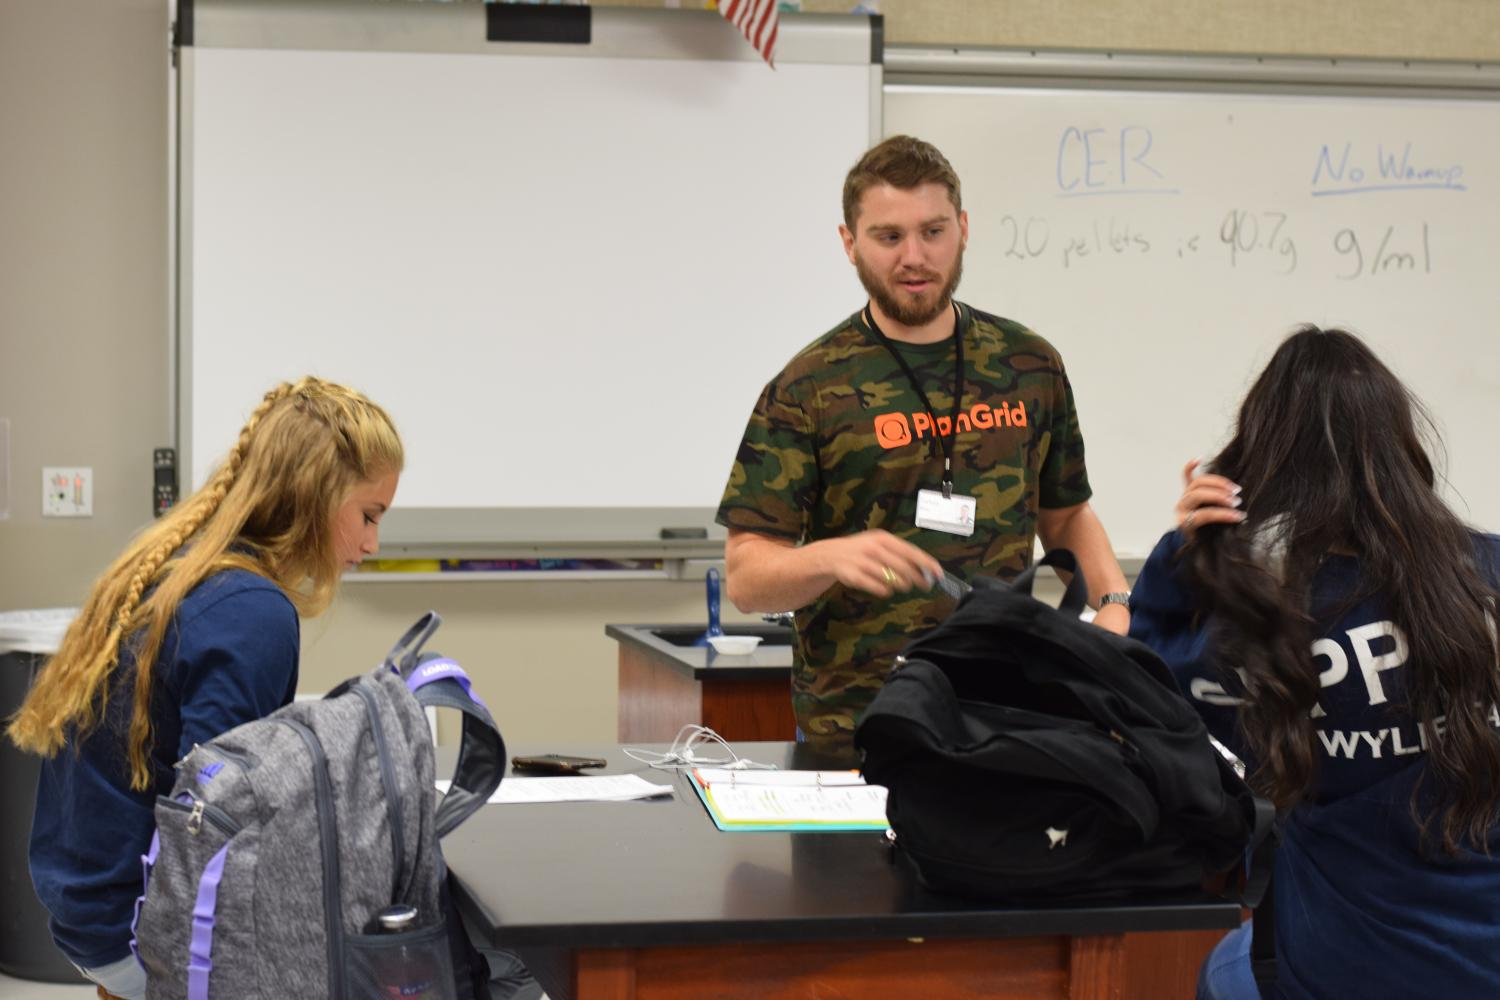 Head+of+the+class+%2F%2F+Teaching+chemical+measurements%2C+Mr.+Zach+Neu+is+a+first-year+teacher+and+a+former+Raider.